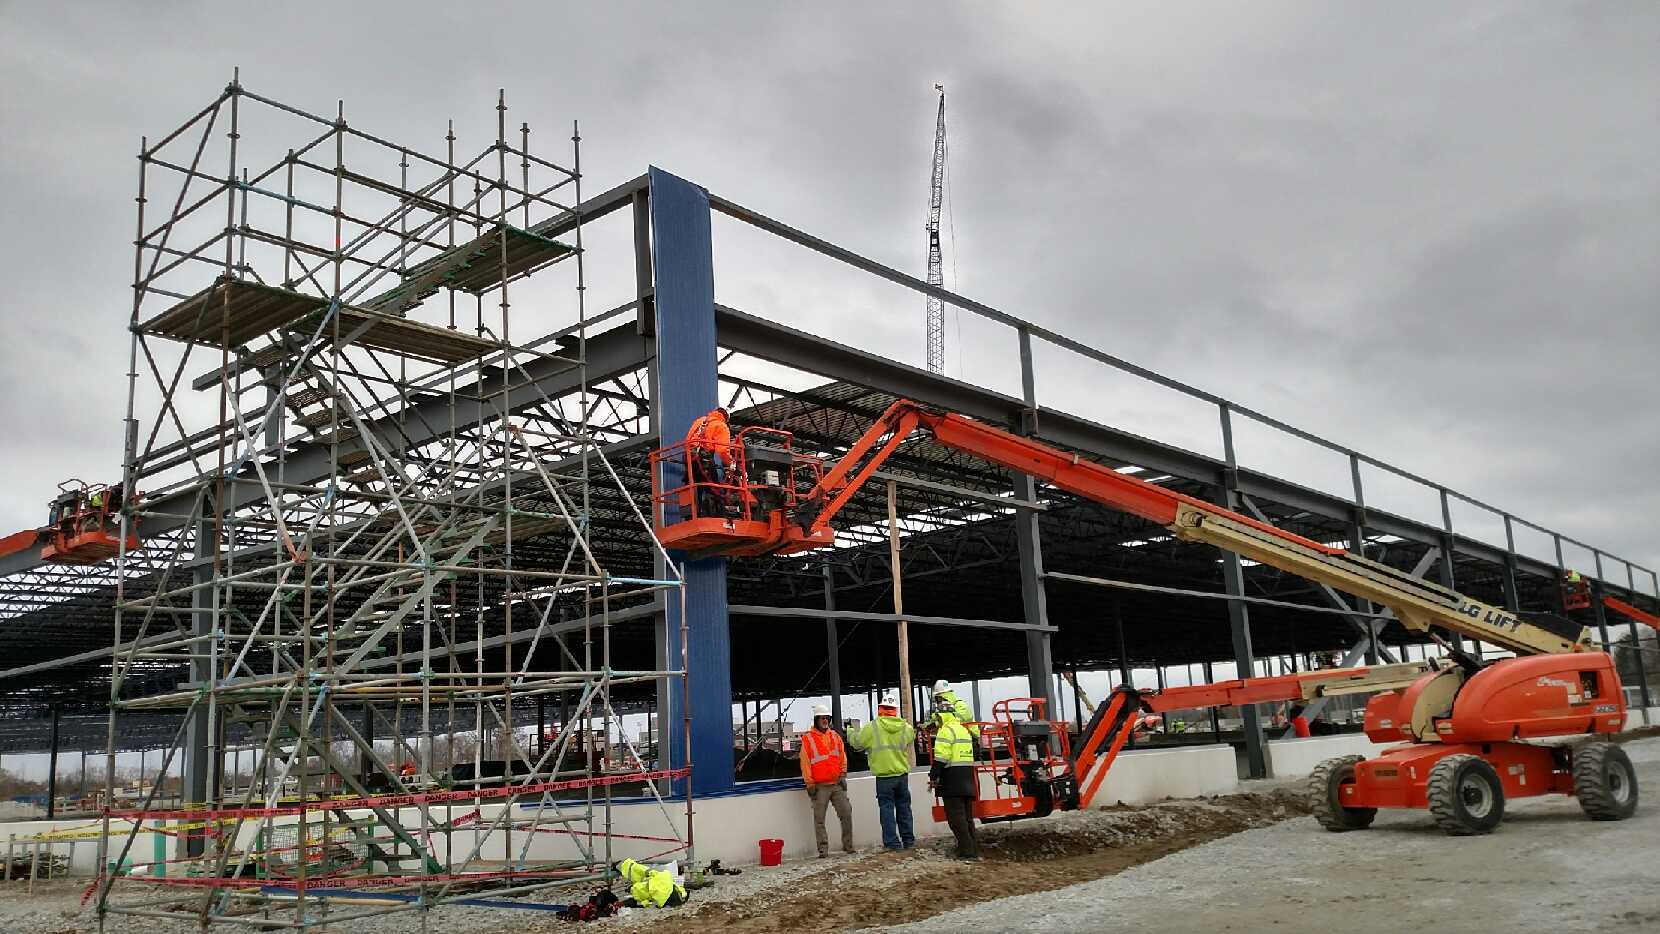 Iconic blue exterior begins to shape future IKEA Fishers as construction progresses on Indiana store opening Fall 2017 (Photo: Business Wire)